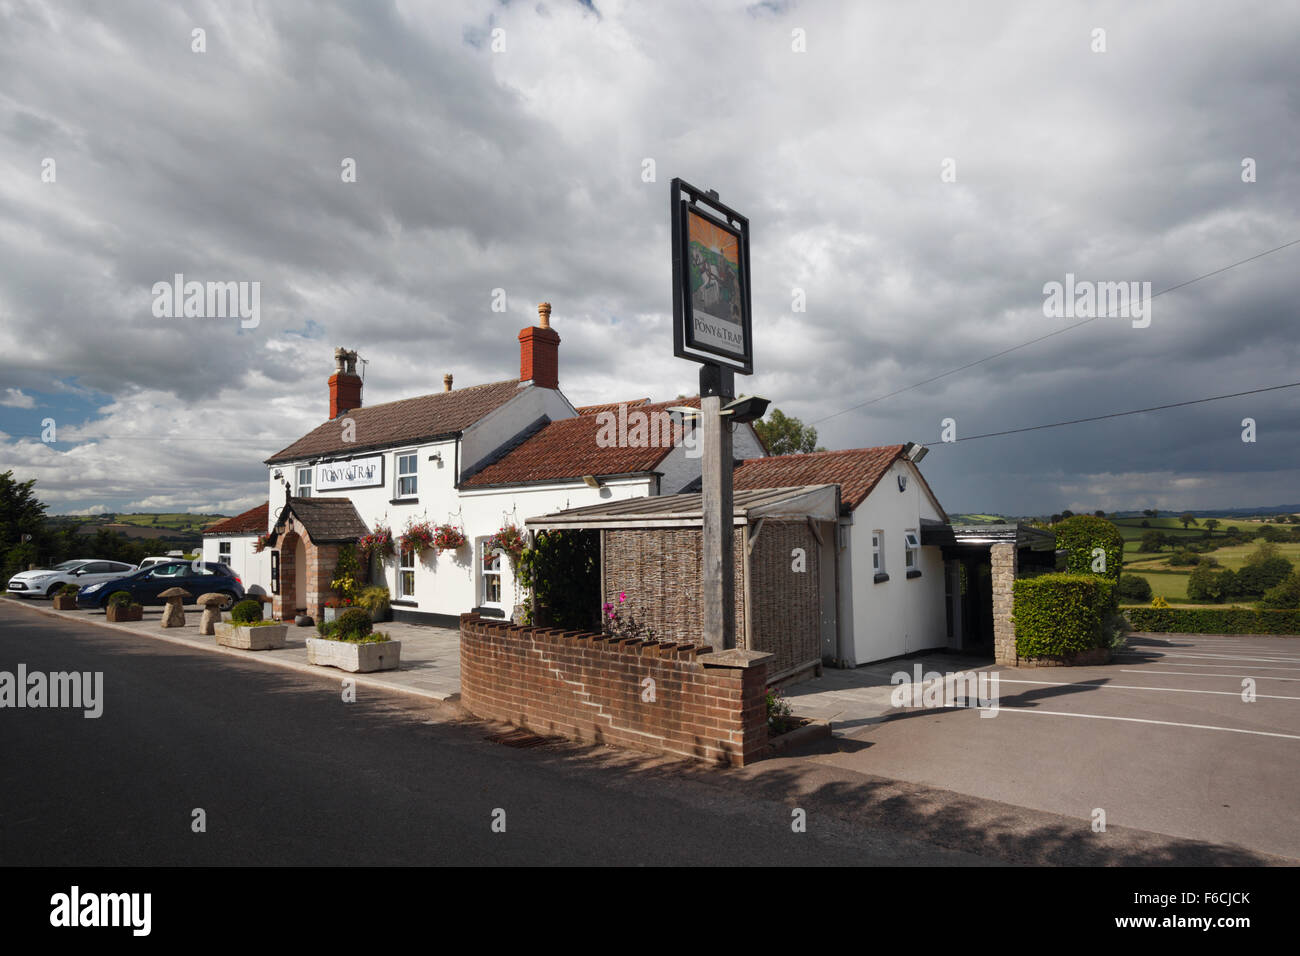 The Pony and Trap Pub. Chew Magna. Somerset, UK. - Stock Image